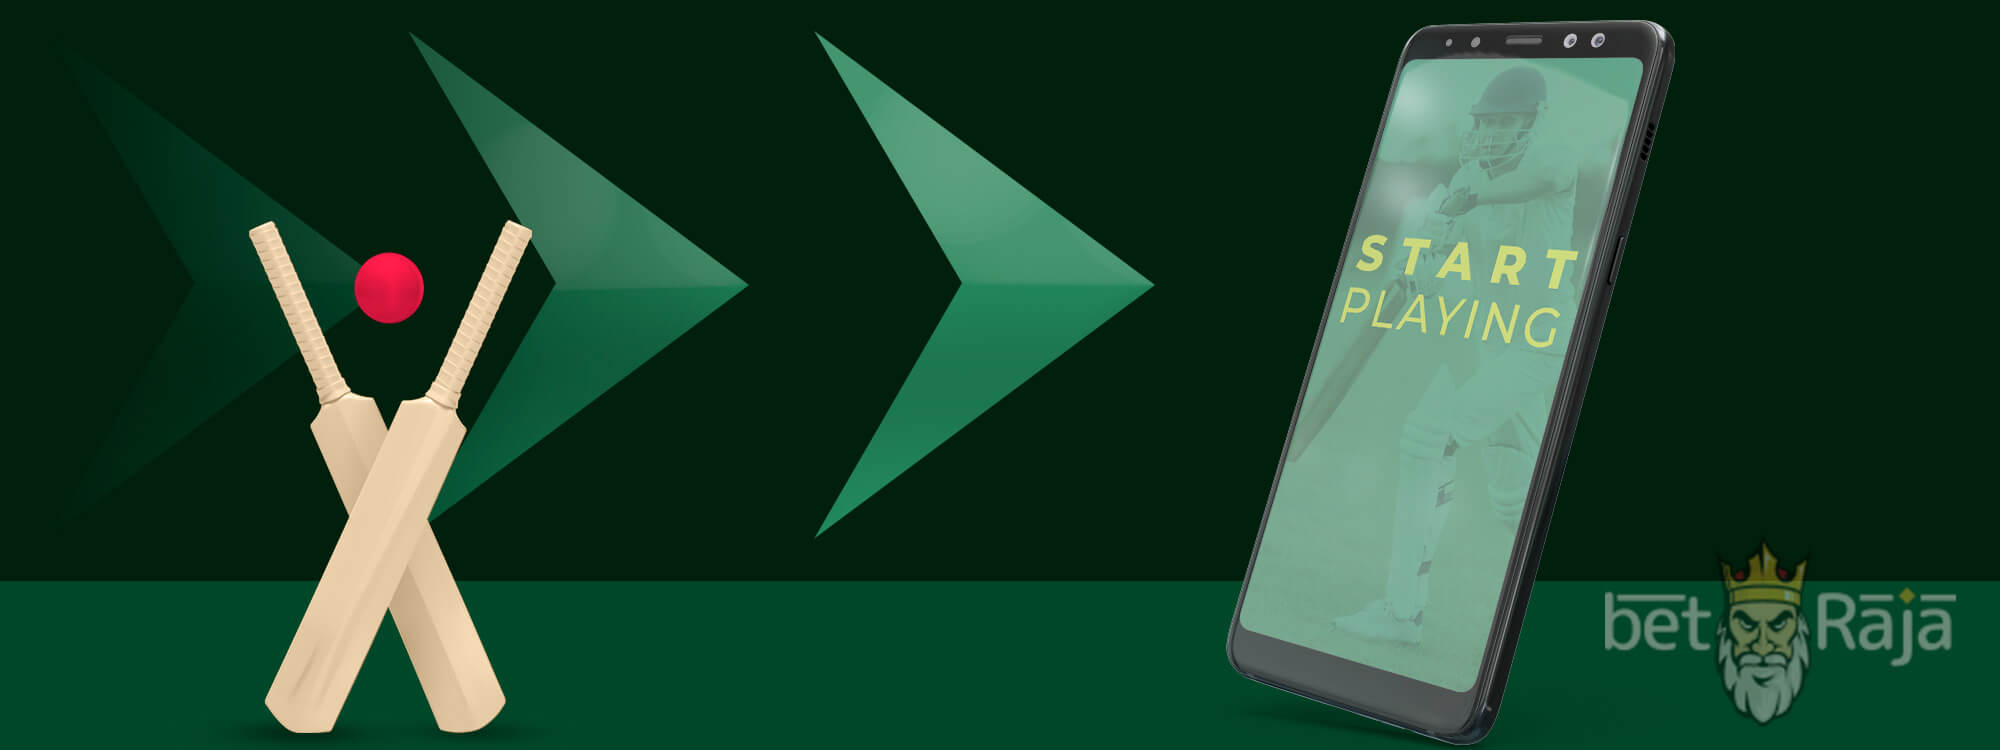 Start betting on cricket via android and ios apps.